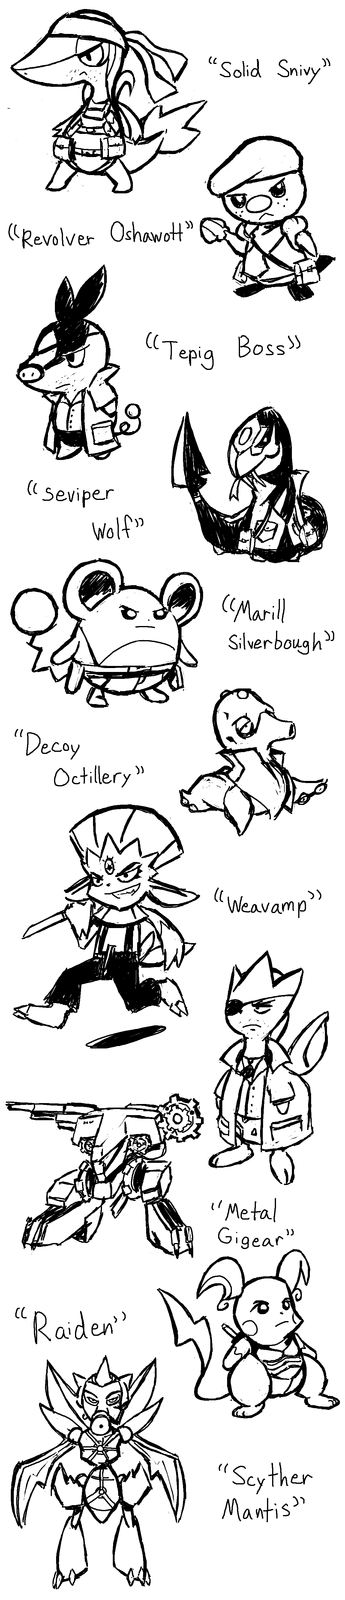 Metal Gear Pokemon